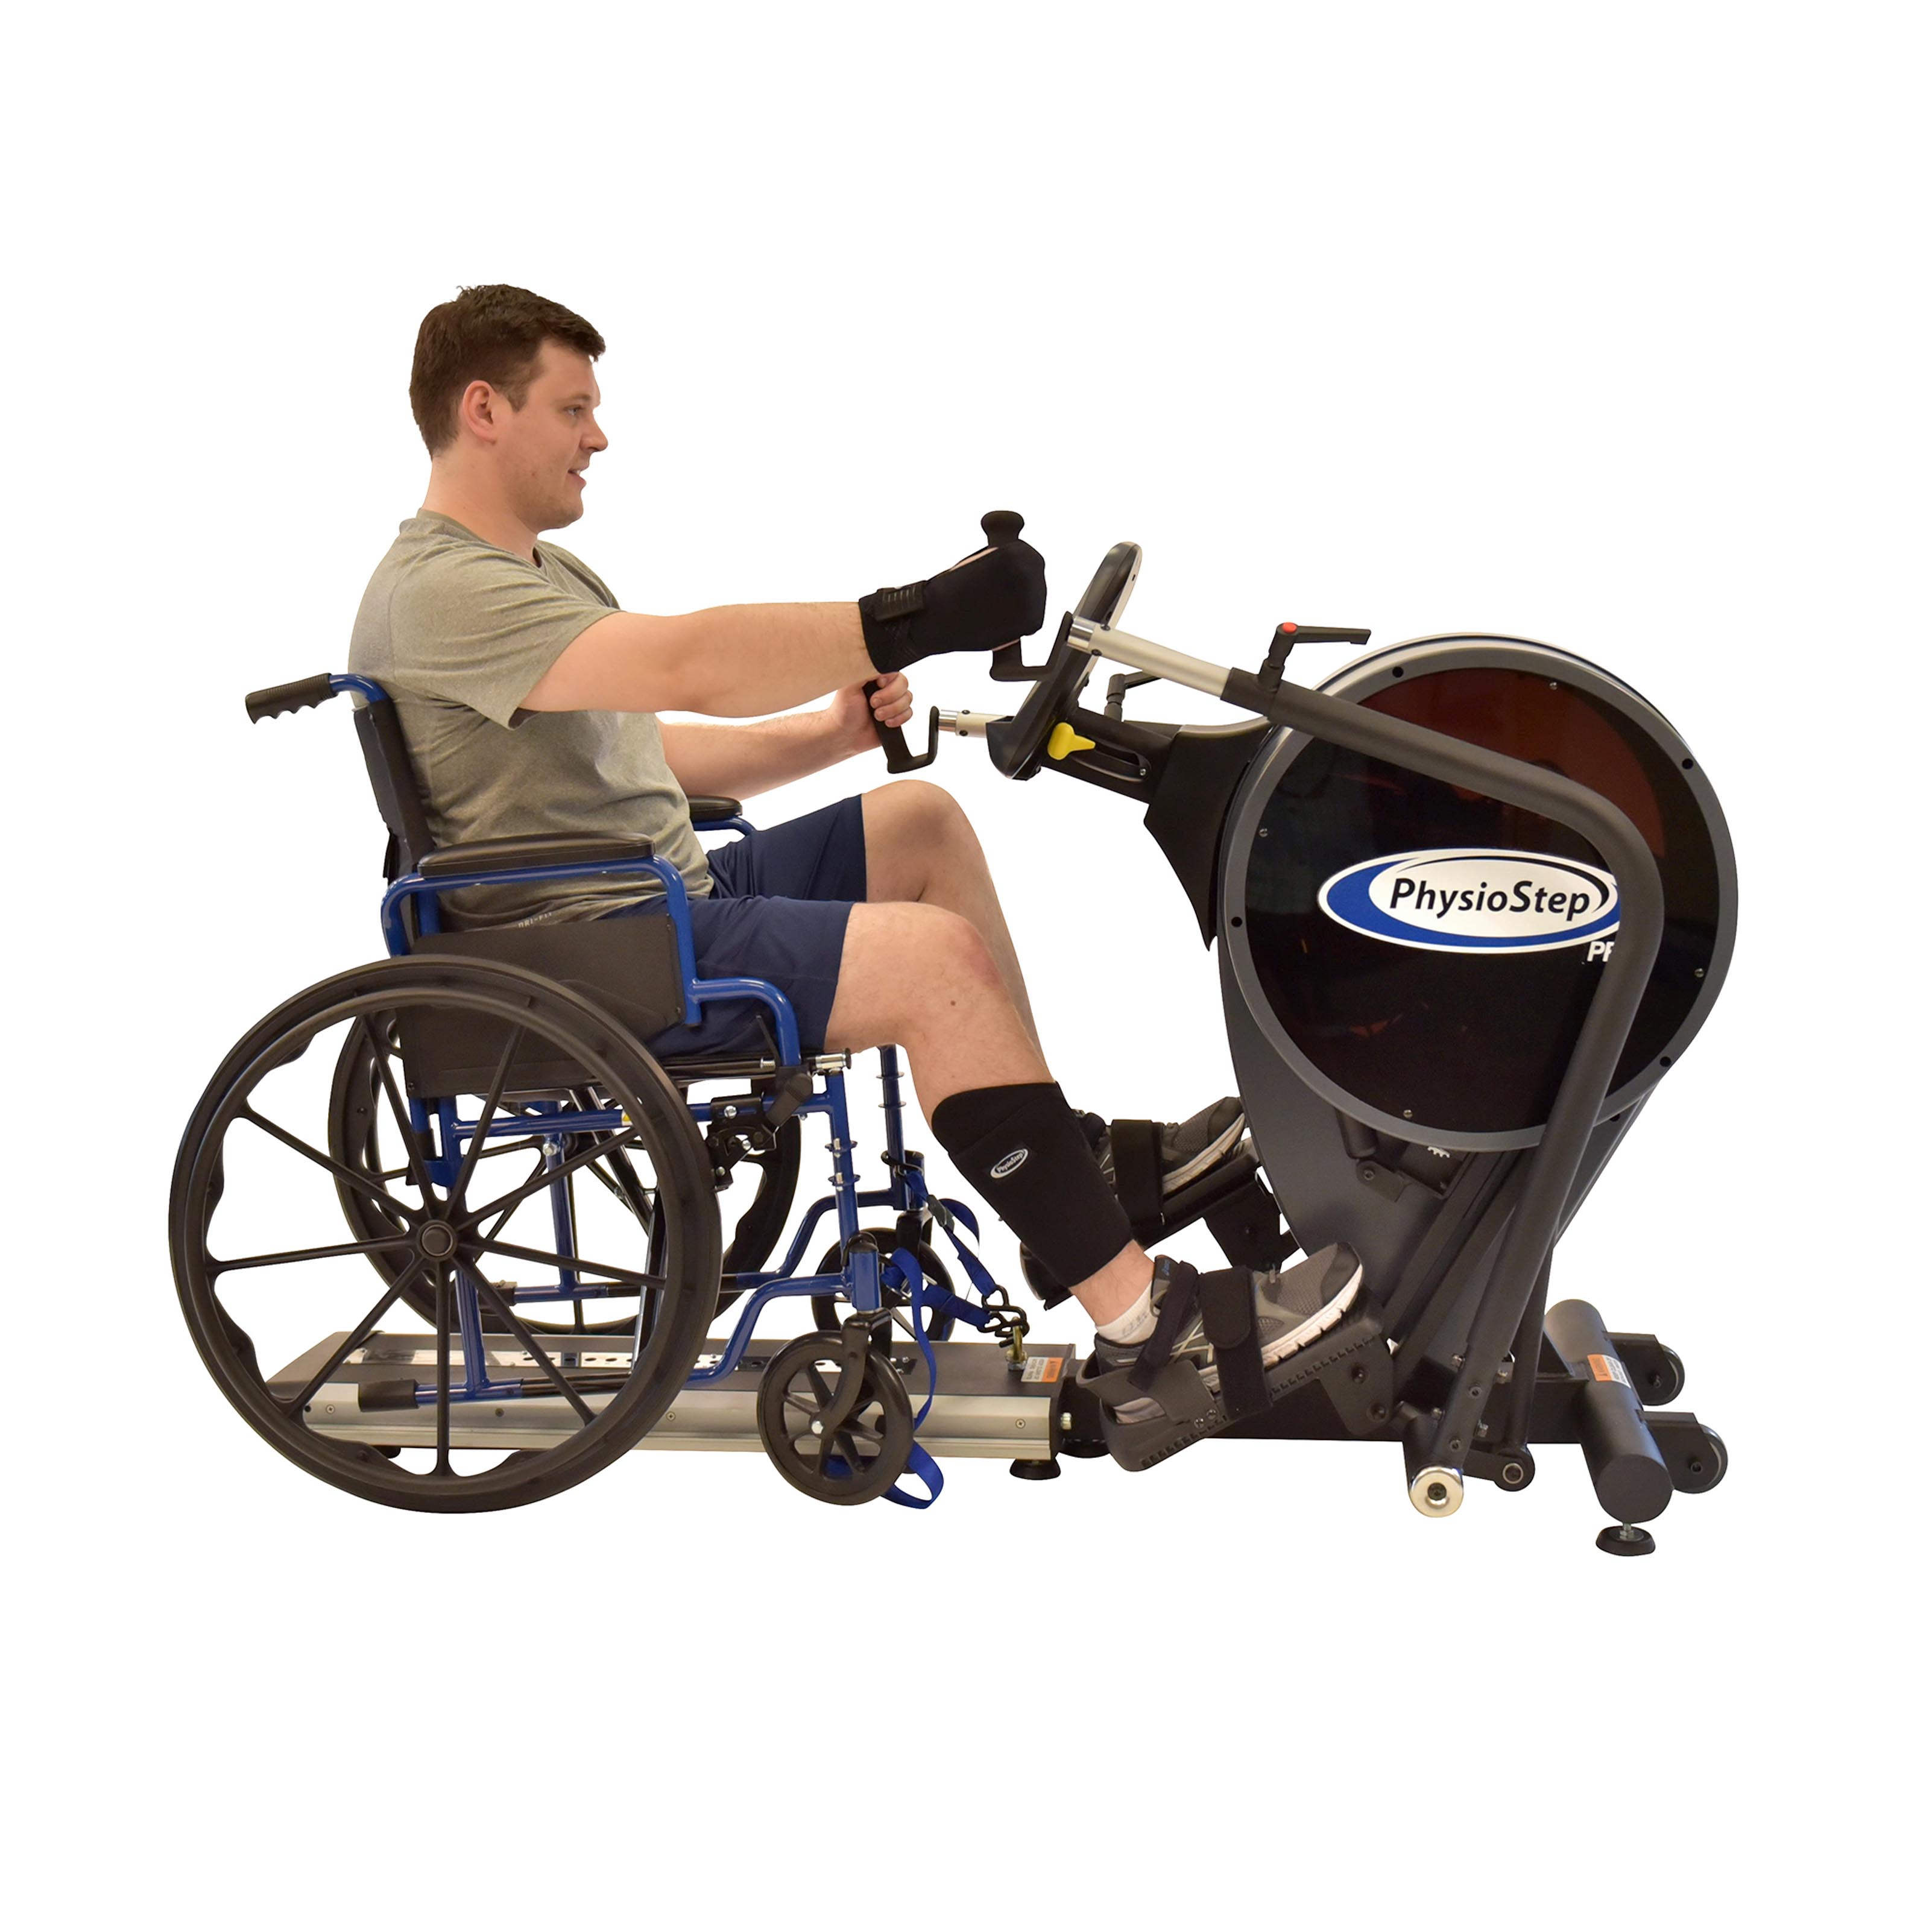 PhysioStep PRO Recumbent Stepper Cross Trainer Wheelchair ADA